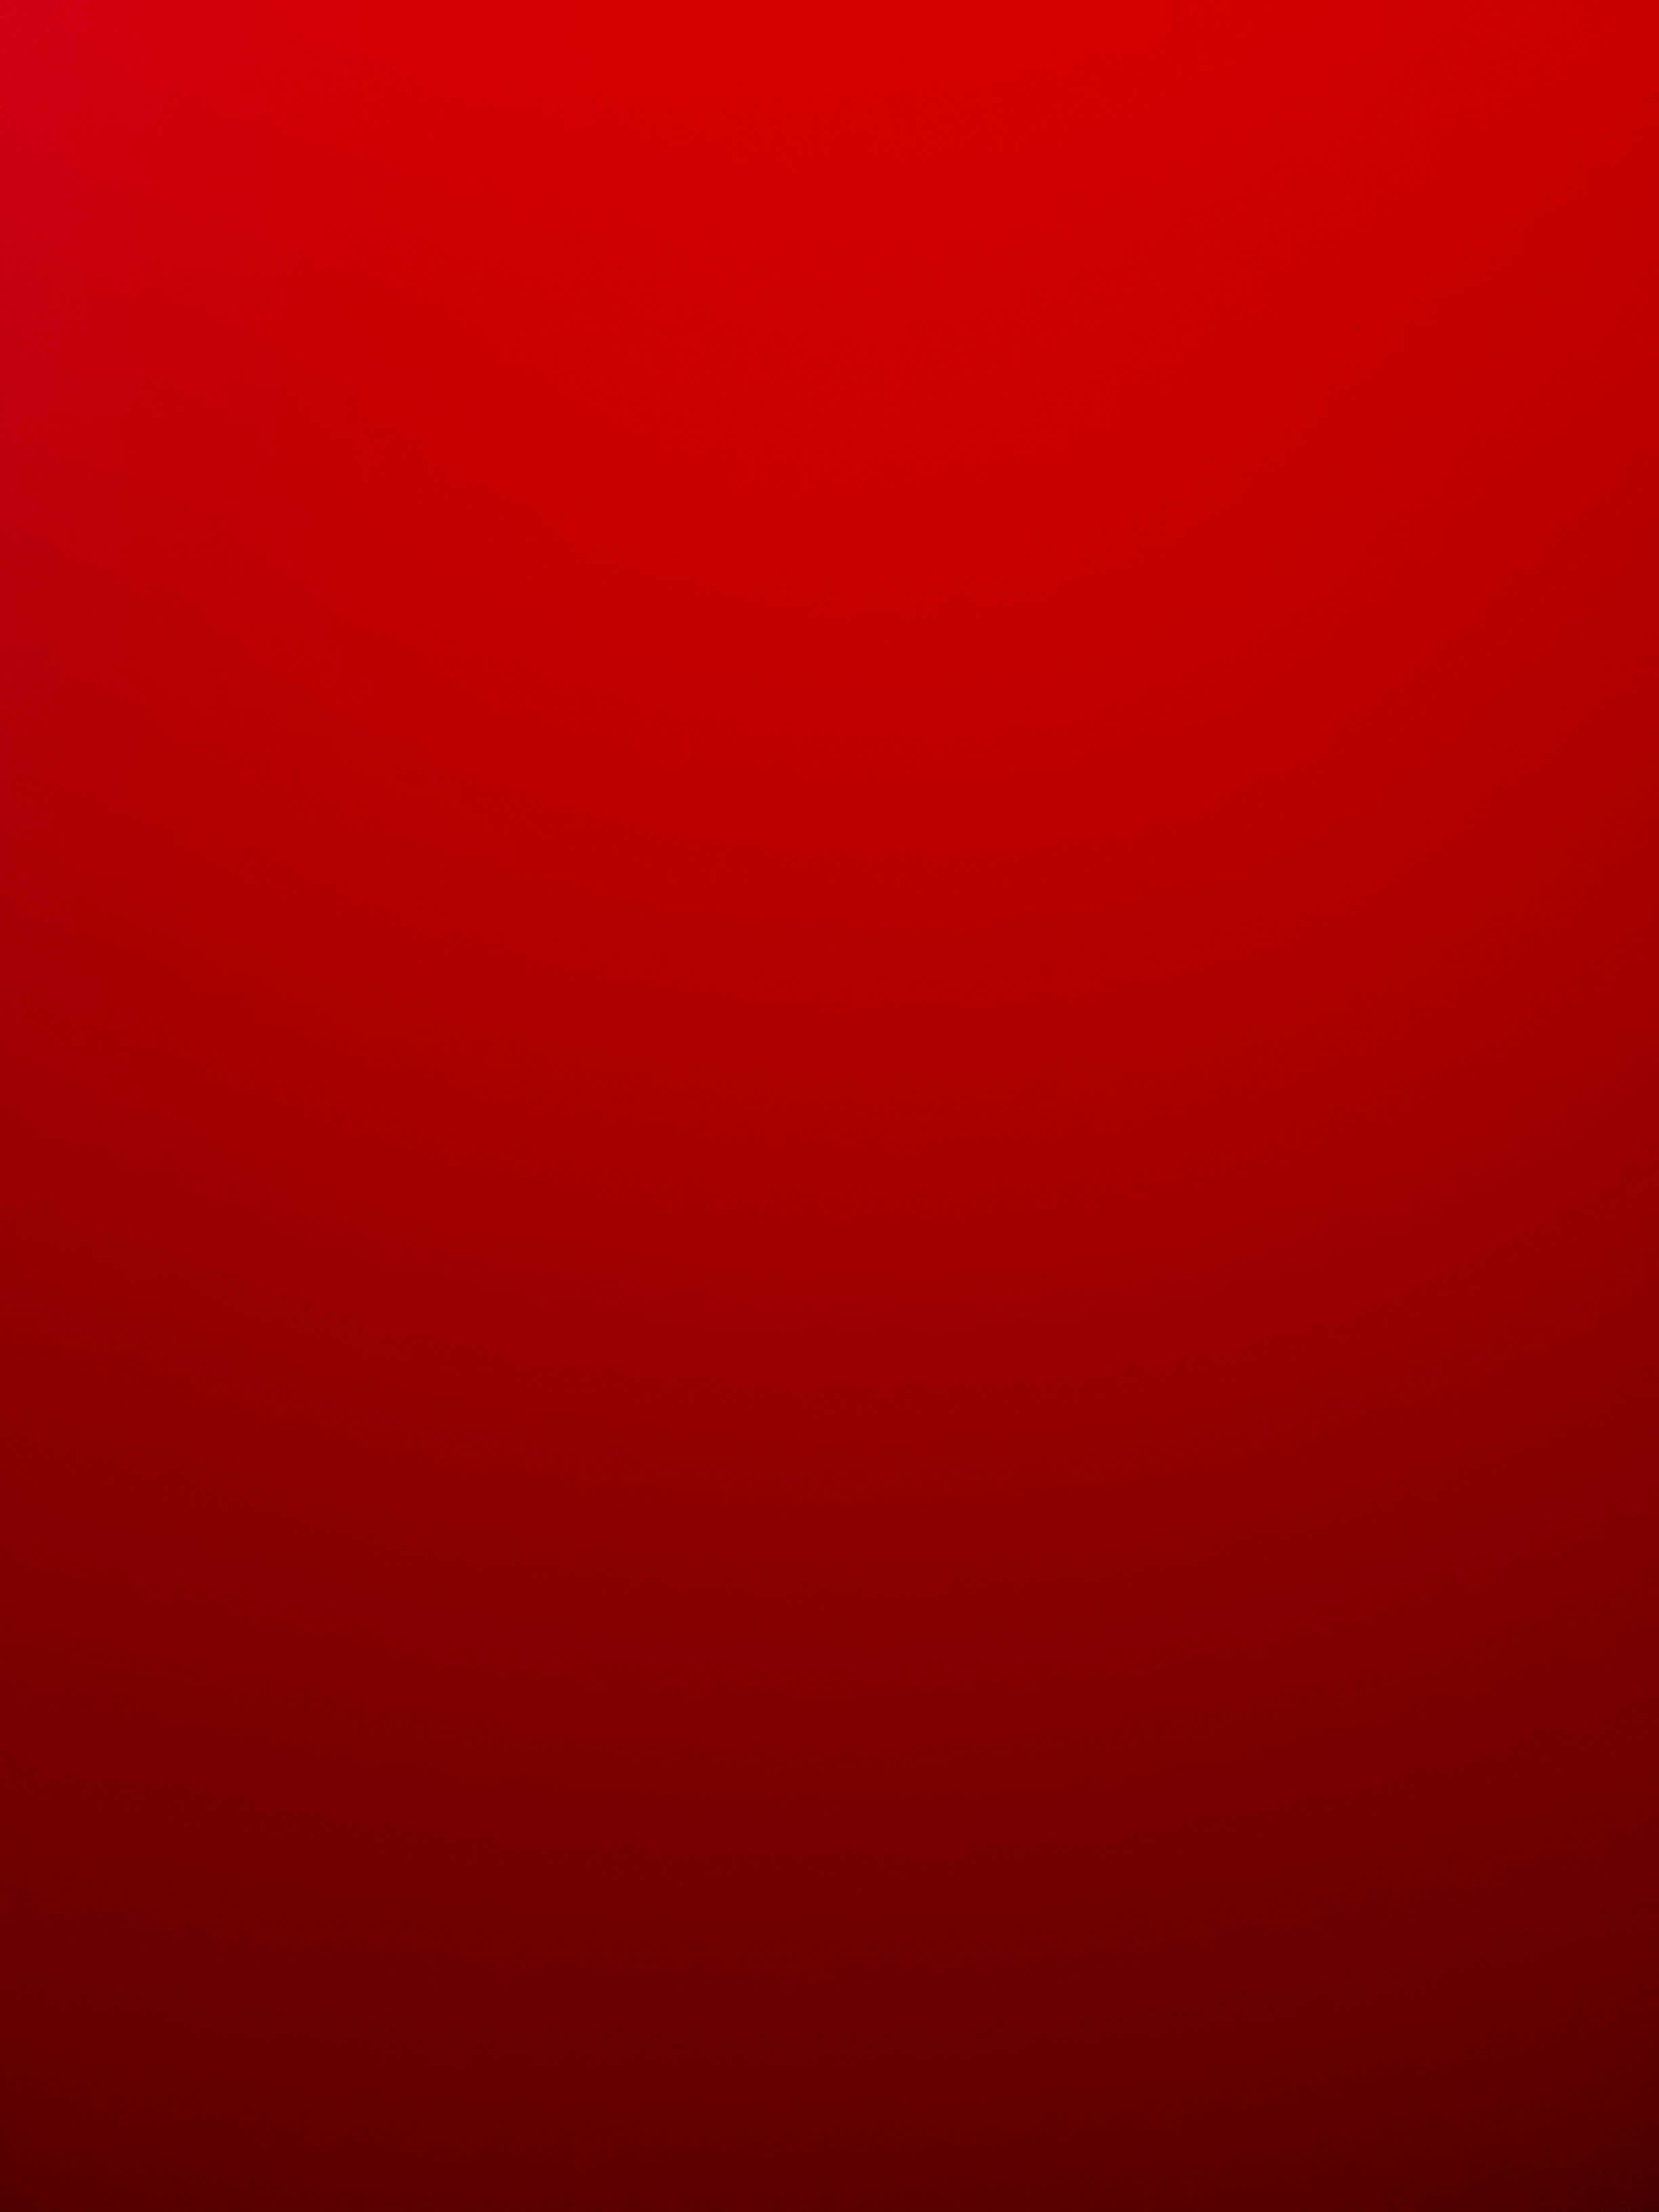 Small Size Car Wallpapers Free Stock Photo Of Background Red Red Background